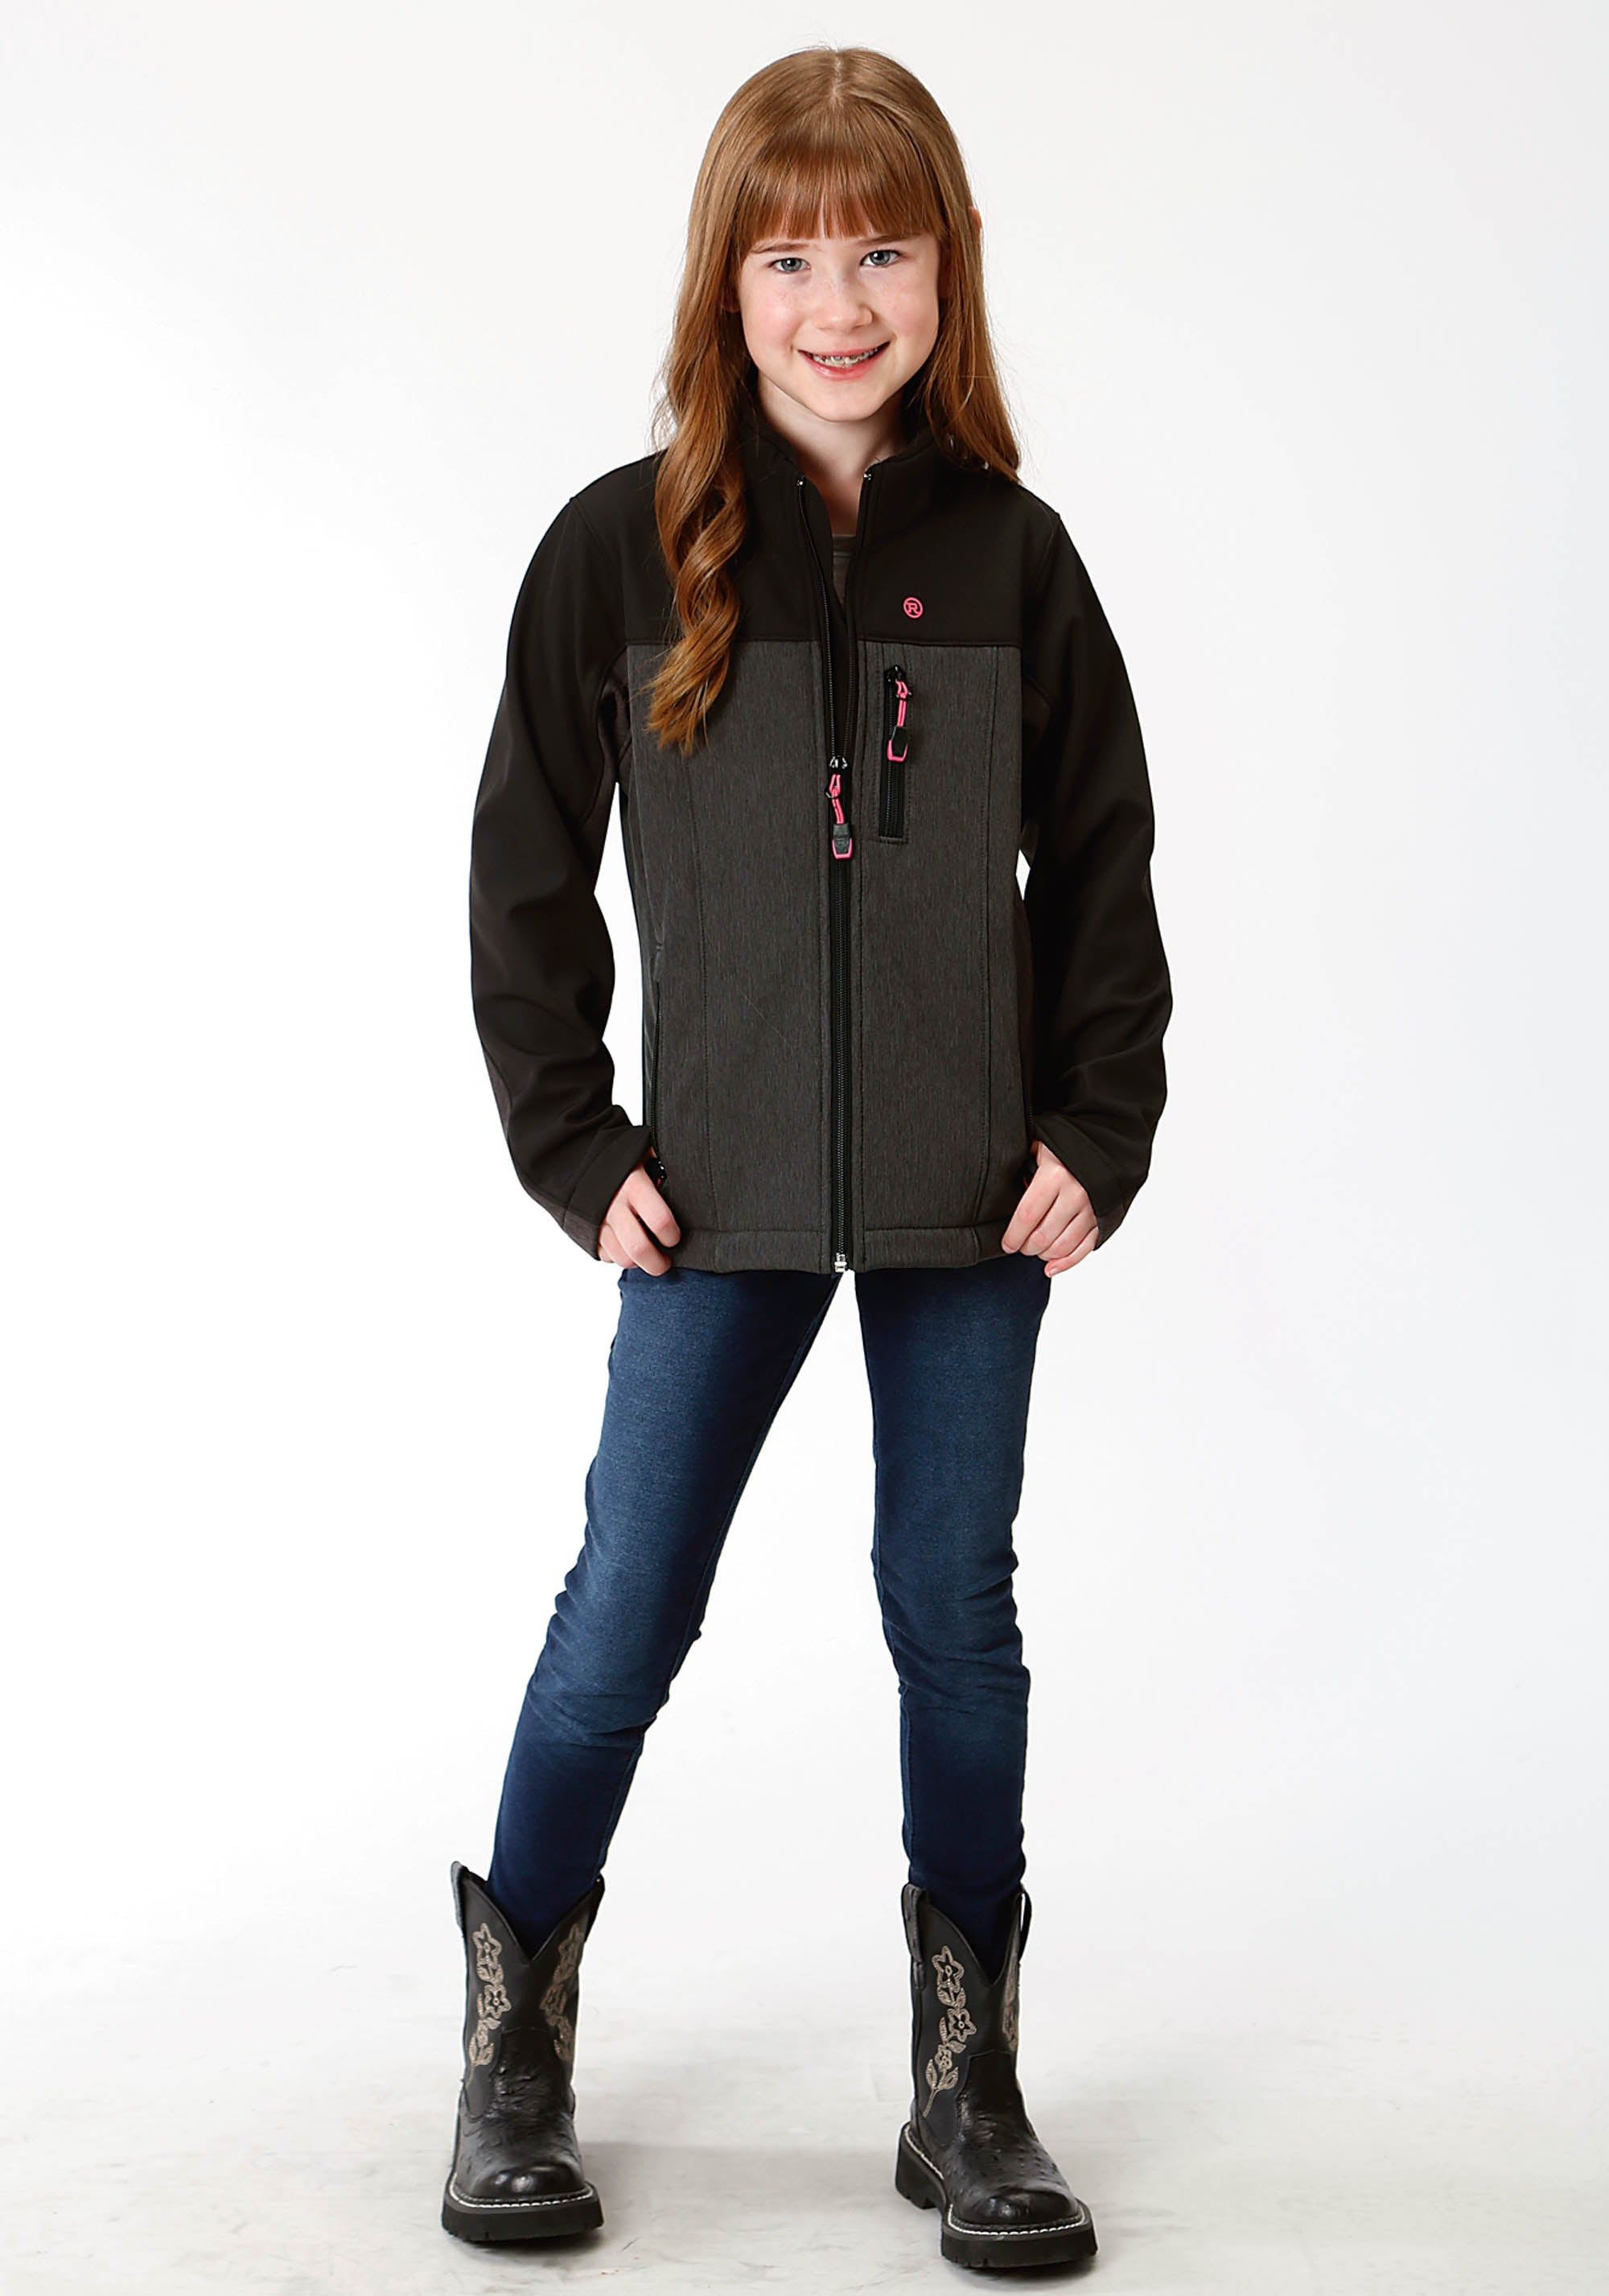 ROPER GIRLS GREY 9429 GREY TEXTURED & SOLID BLACK ROPER OUTERWEAR- GIRLS JACKET